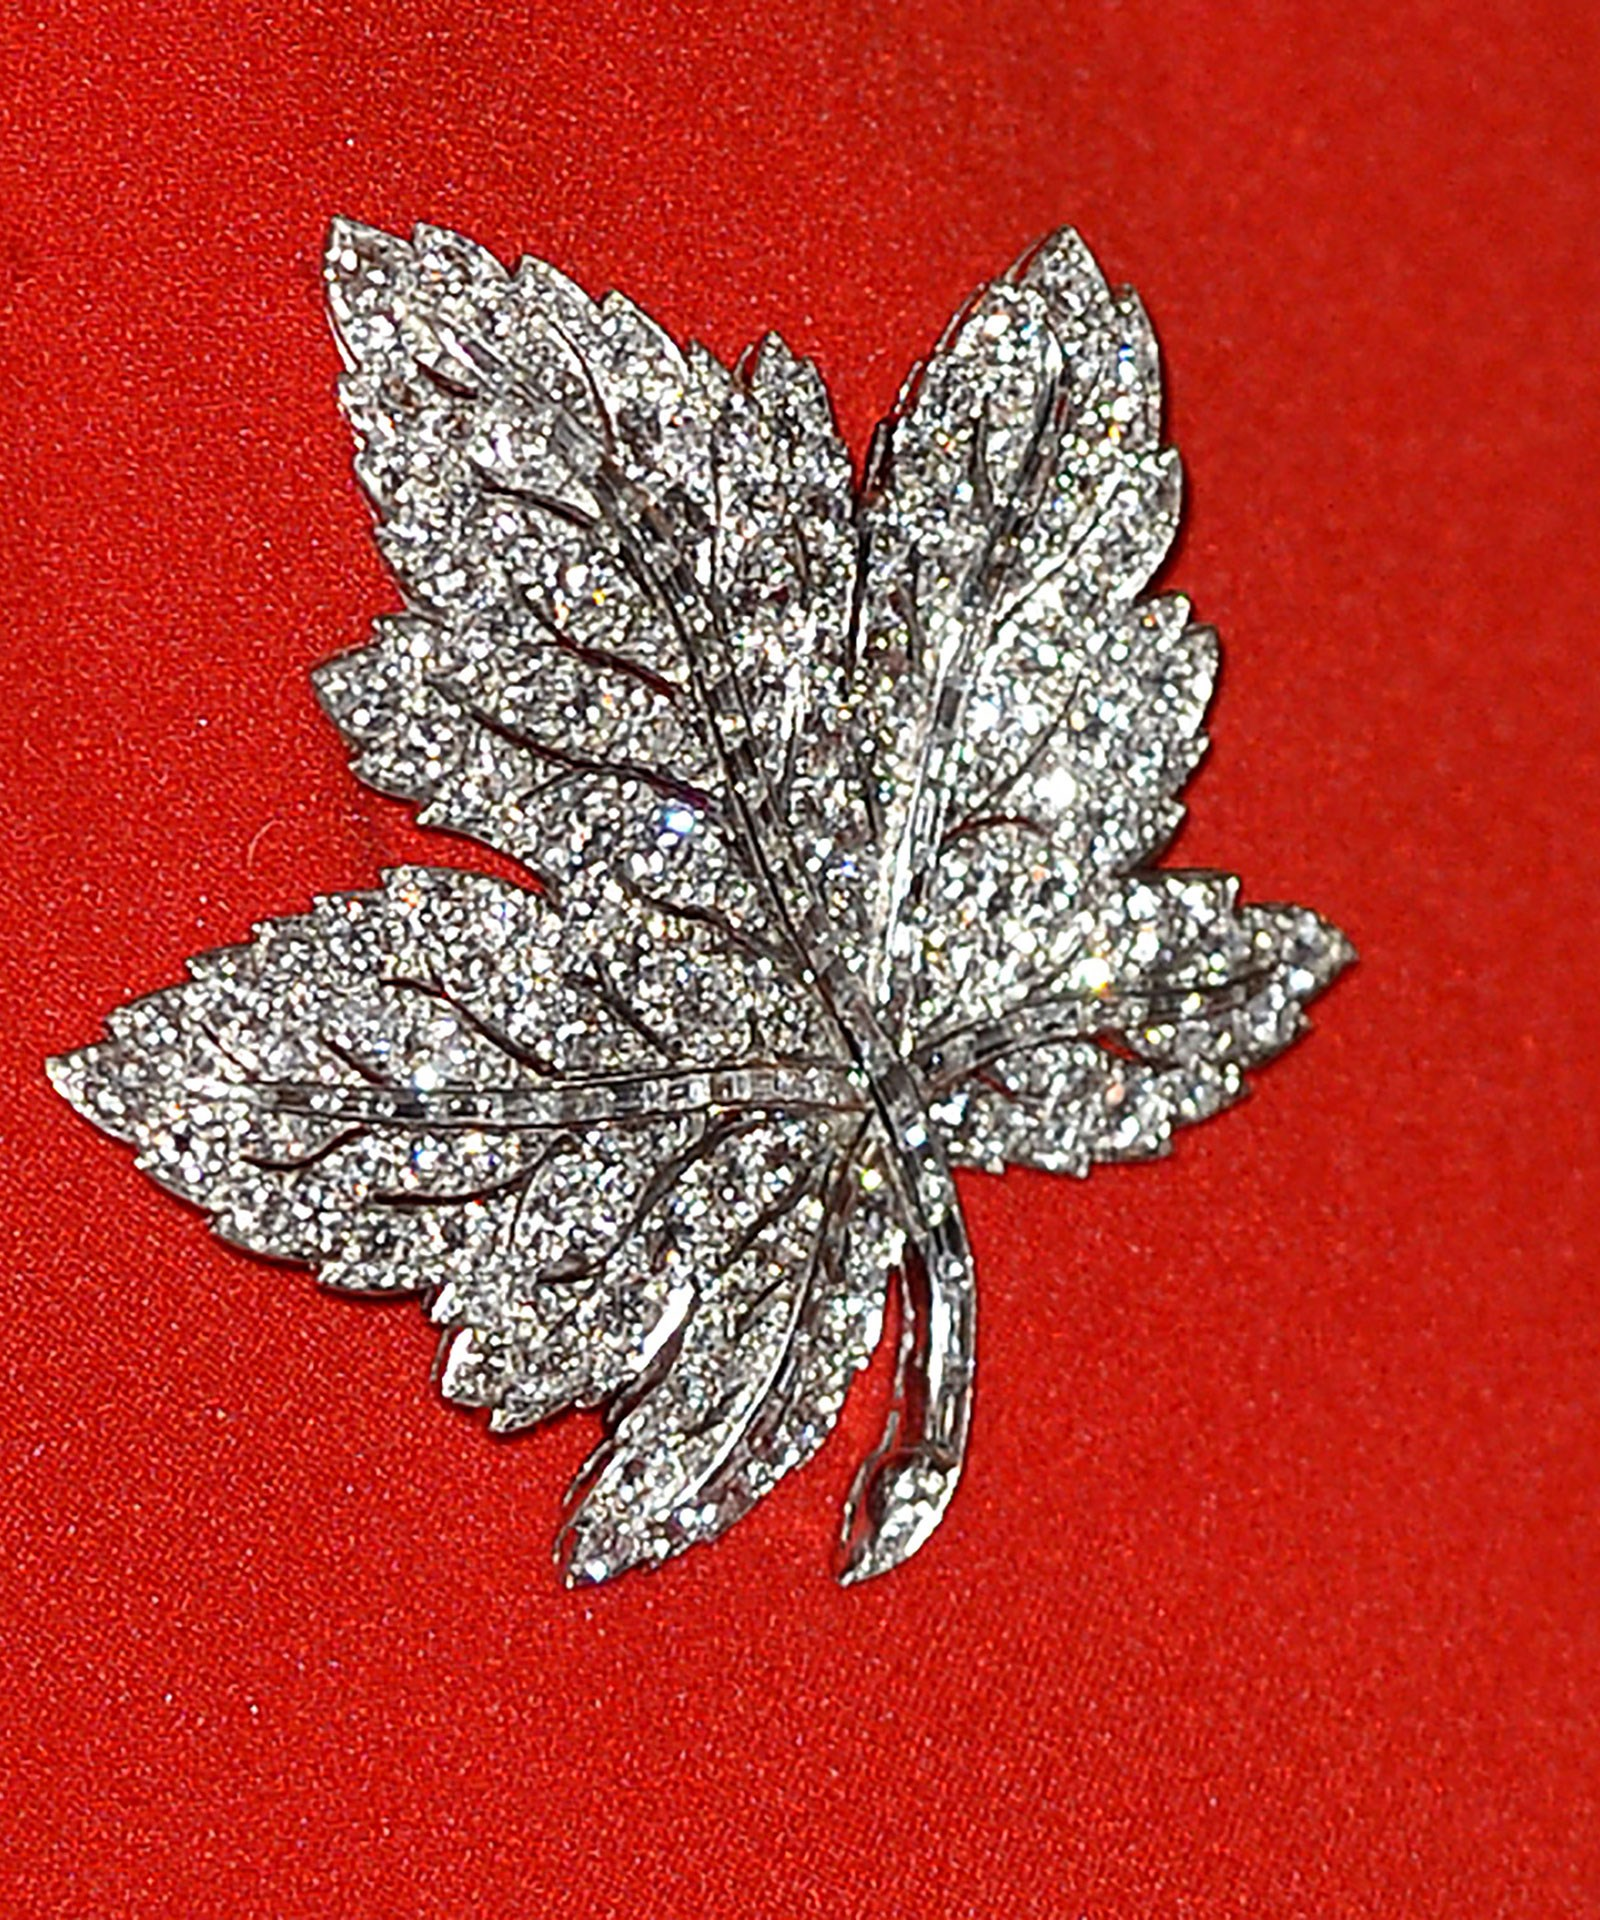 Catherine's brooch belongs to the royal family, and was given to the late Queen Mother by her husband, King George VI, to mark the state visit to Canada in 1939.